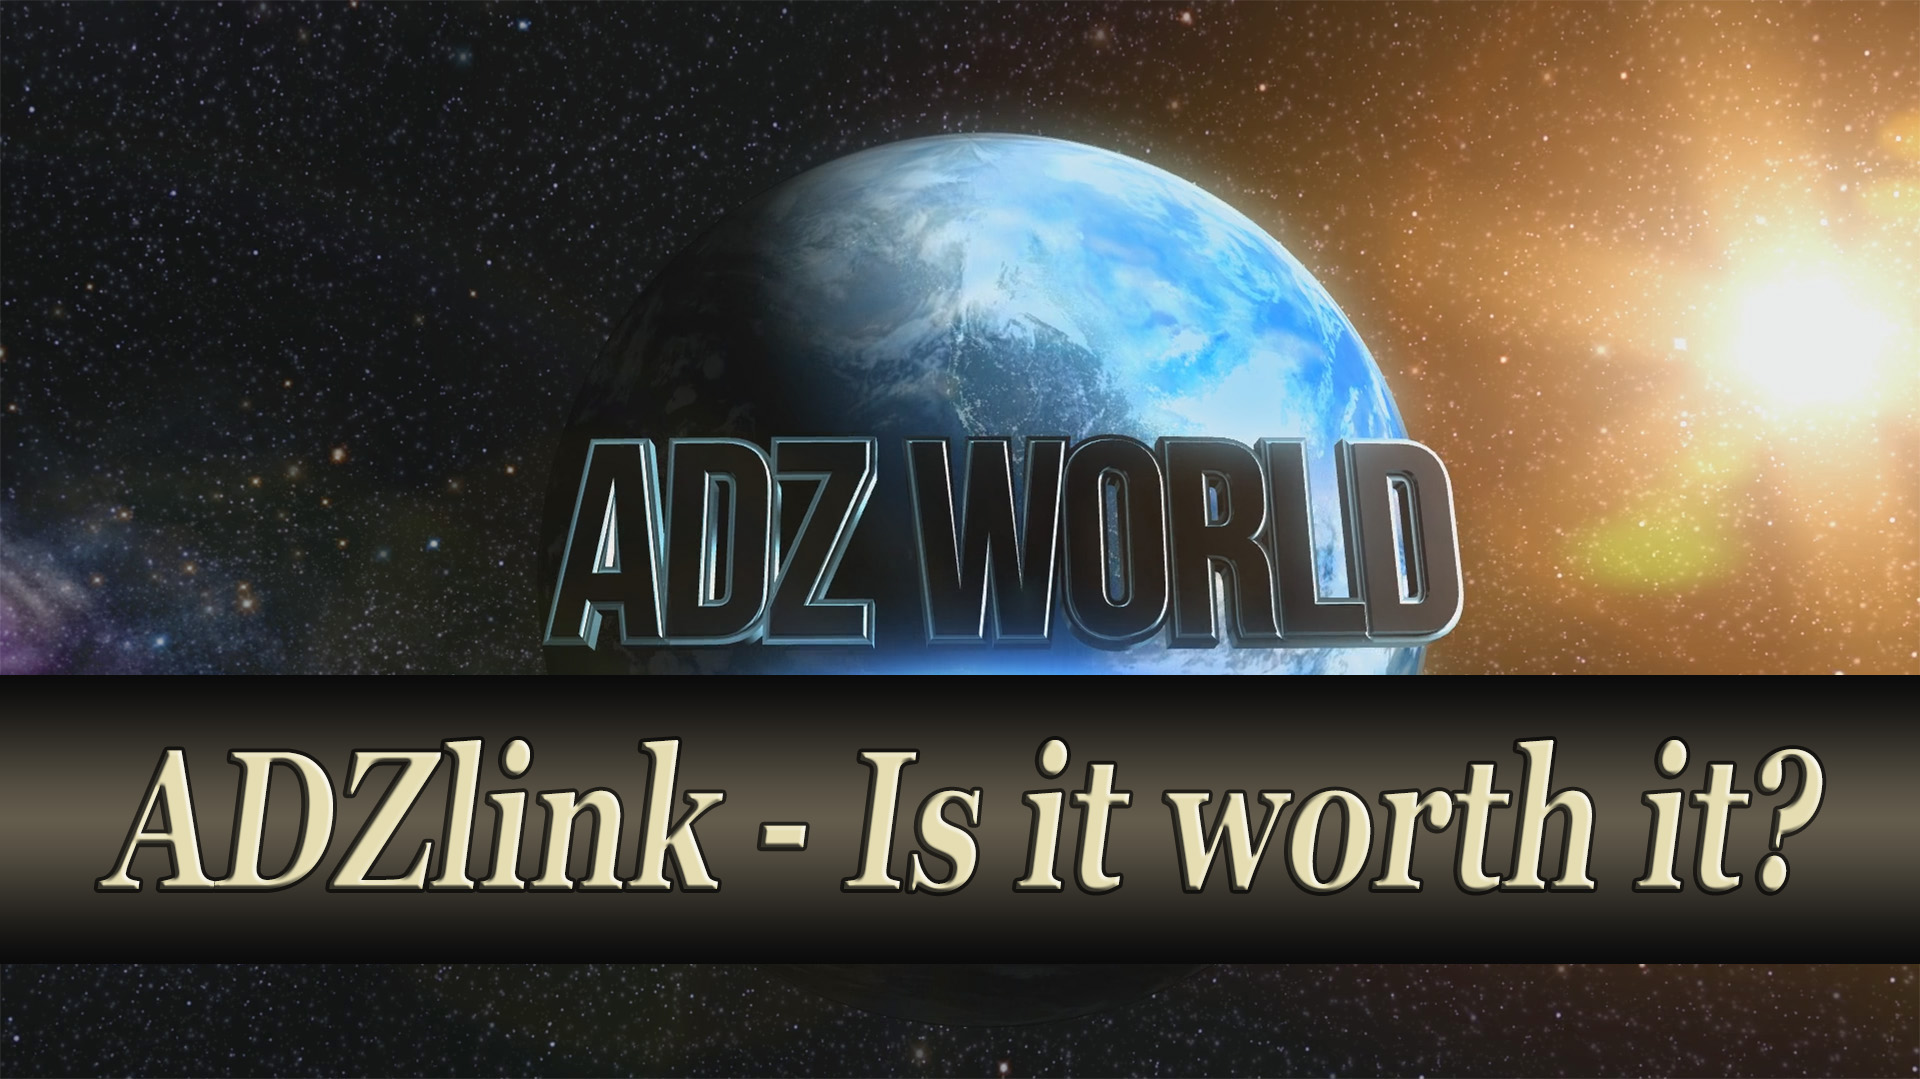 ADZlink- Is it worth it?